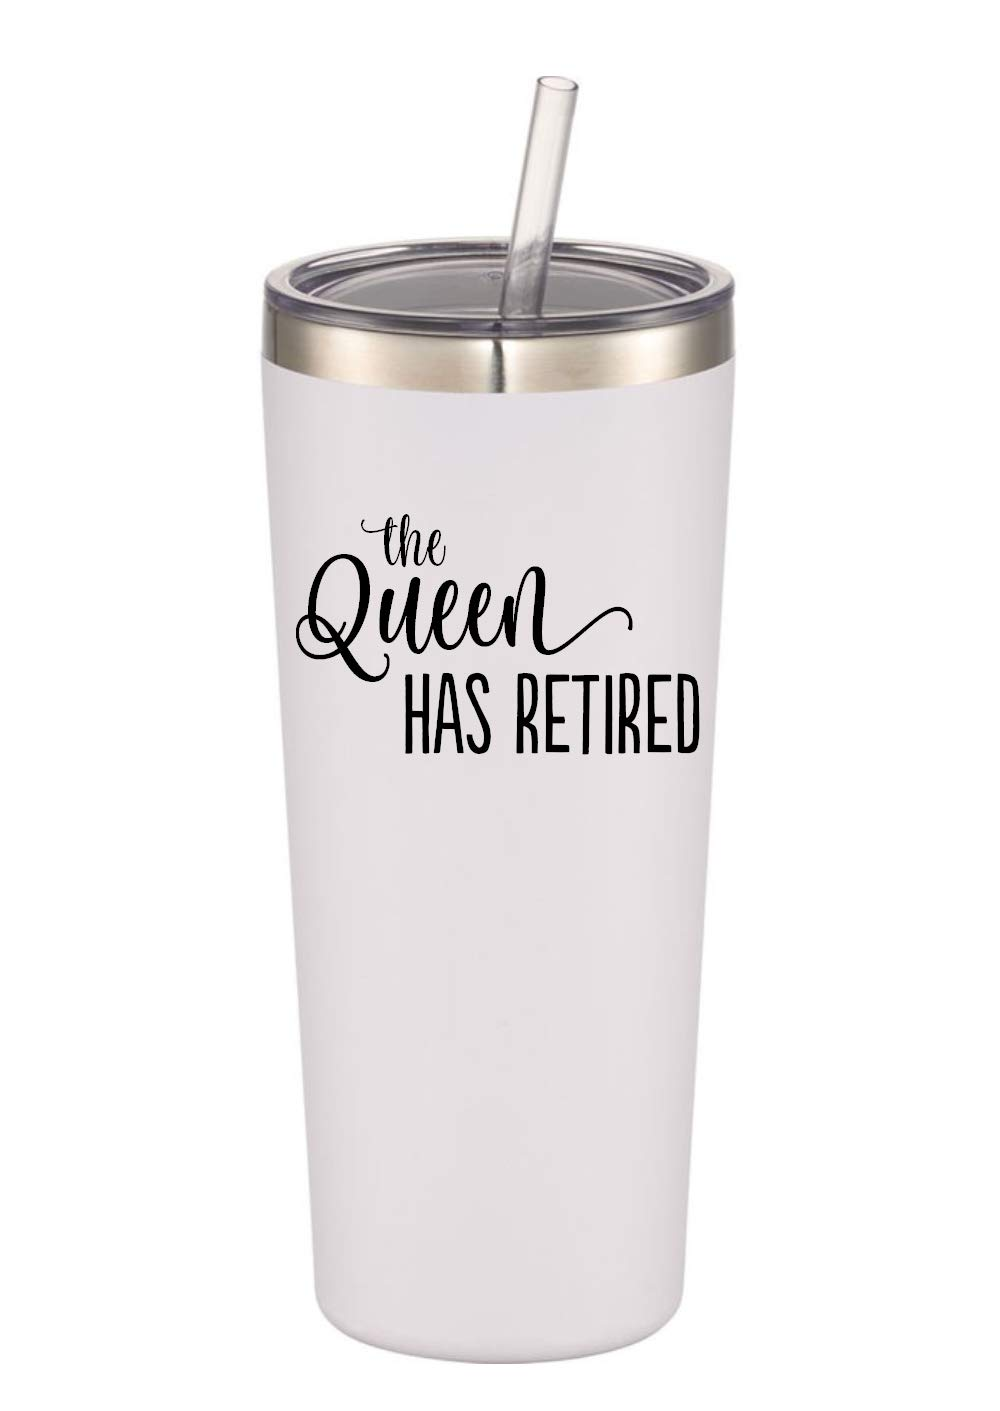 Retirement Gifts For Women - The Queen Has Retired - 22 oz Stainless Steel Insulated Tumbler with Lid and Straw - Funny Retirement Gift for Her